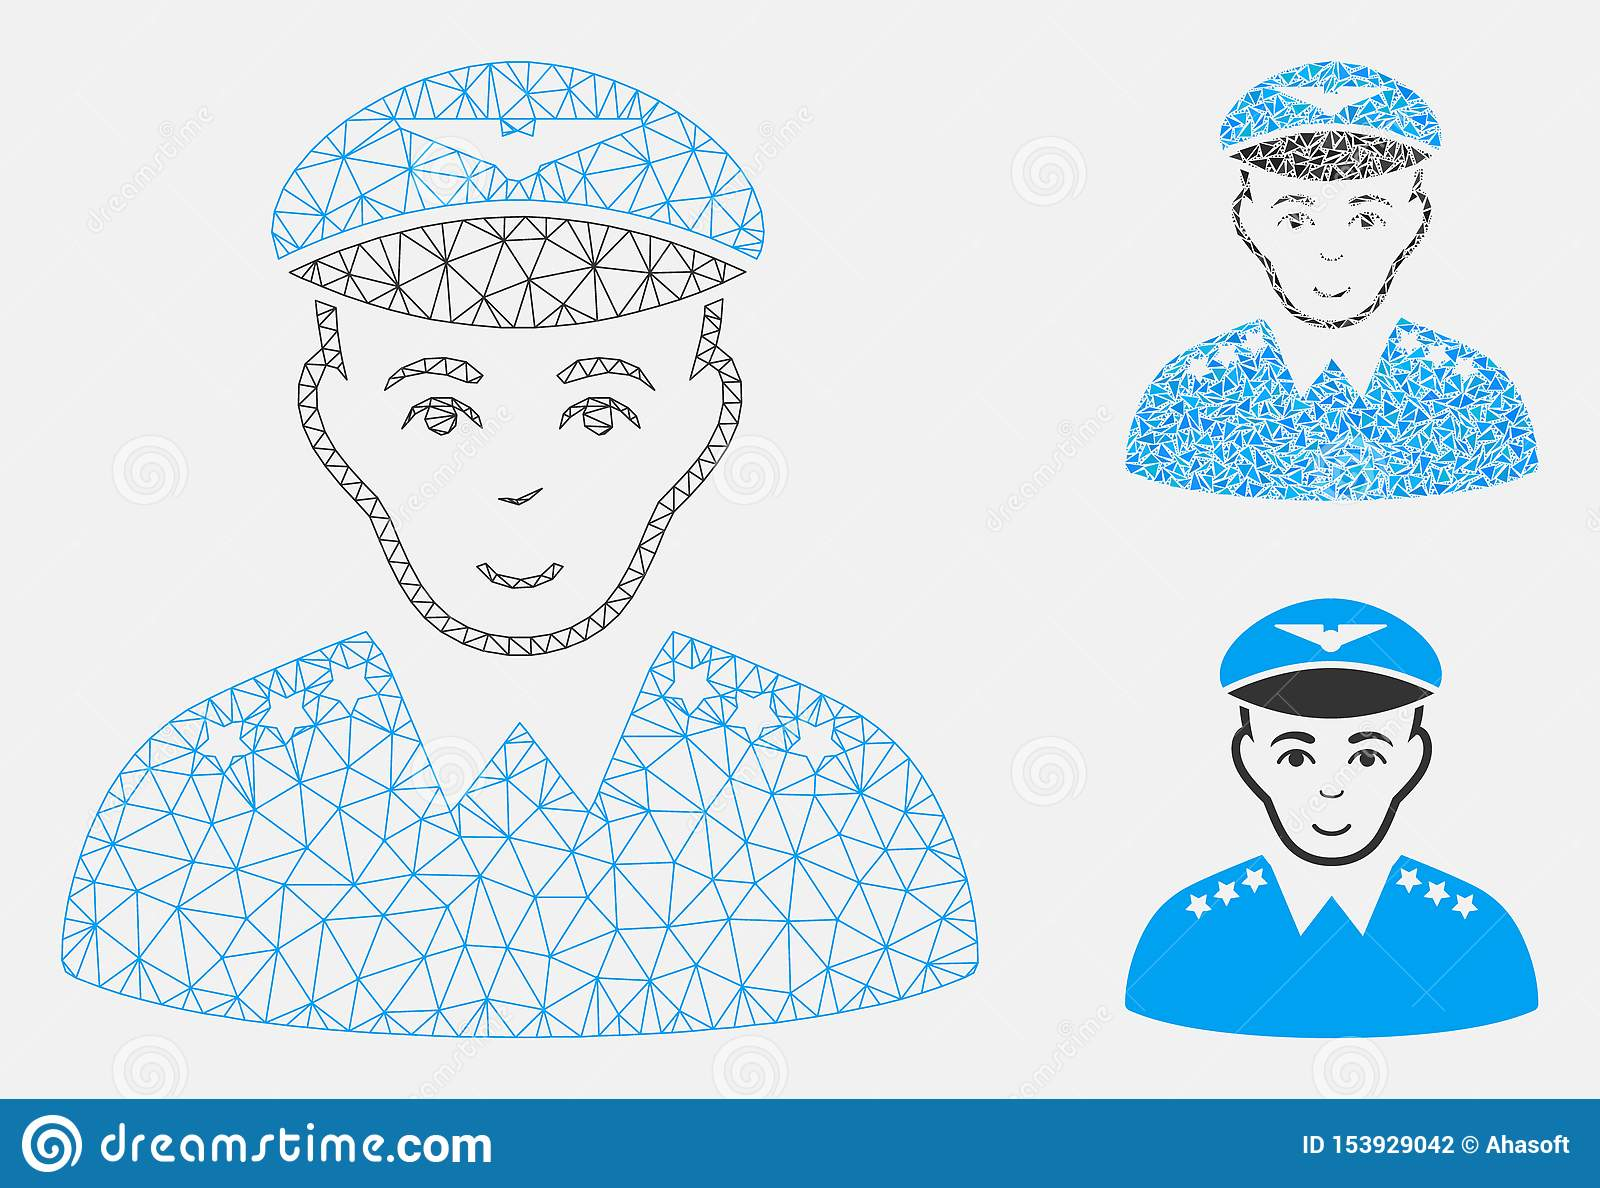 Military Pilot Officer Vector Mesh Network Model and Triangle Mosaic Icon